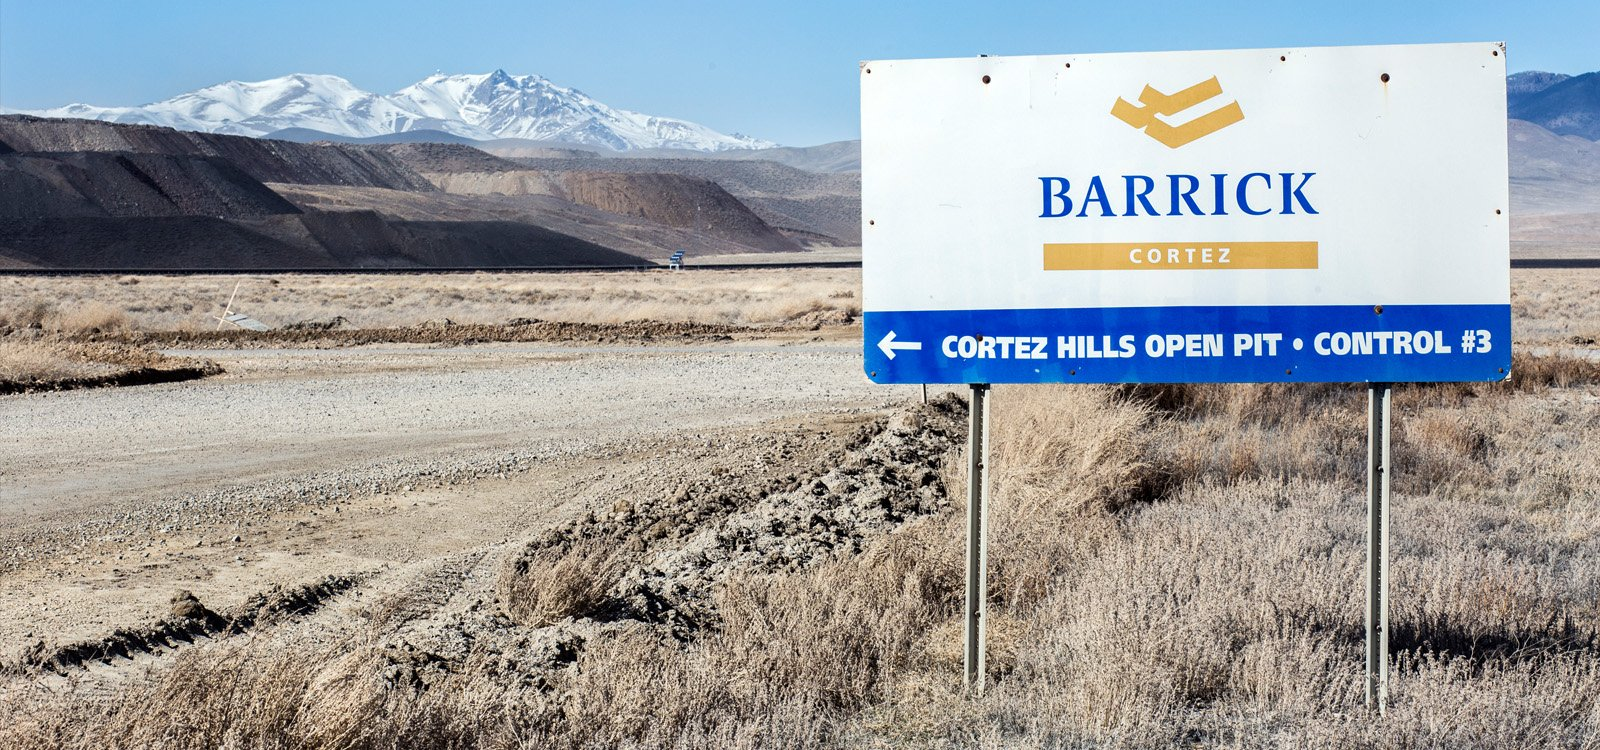 <p>Nestled between the snow-covered Cortez Mountains and the Shoshone Range, Barrick Gold's Cortez mine has consistently been one of the world's top 5 gold producing operations, churning out 1.06 million ounces of the yellow metal in 2016.</p>